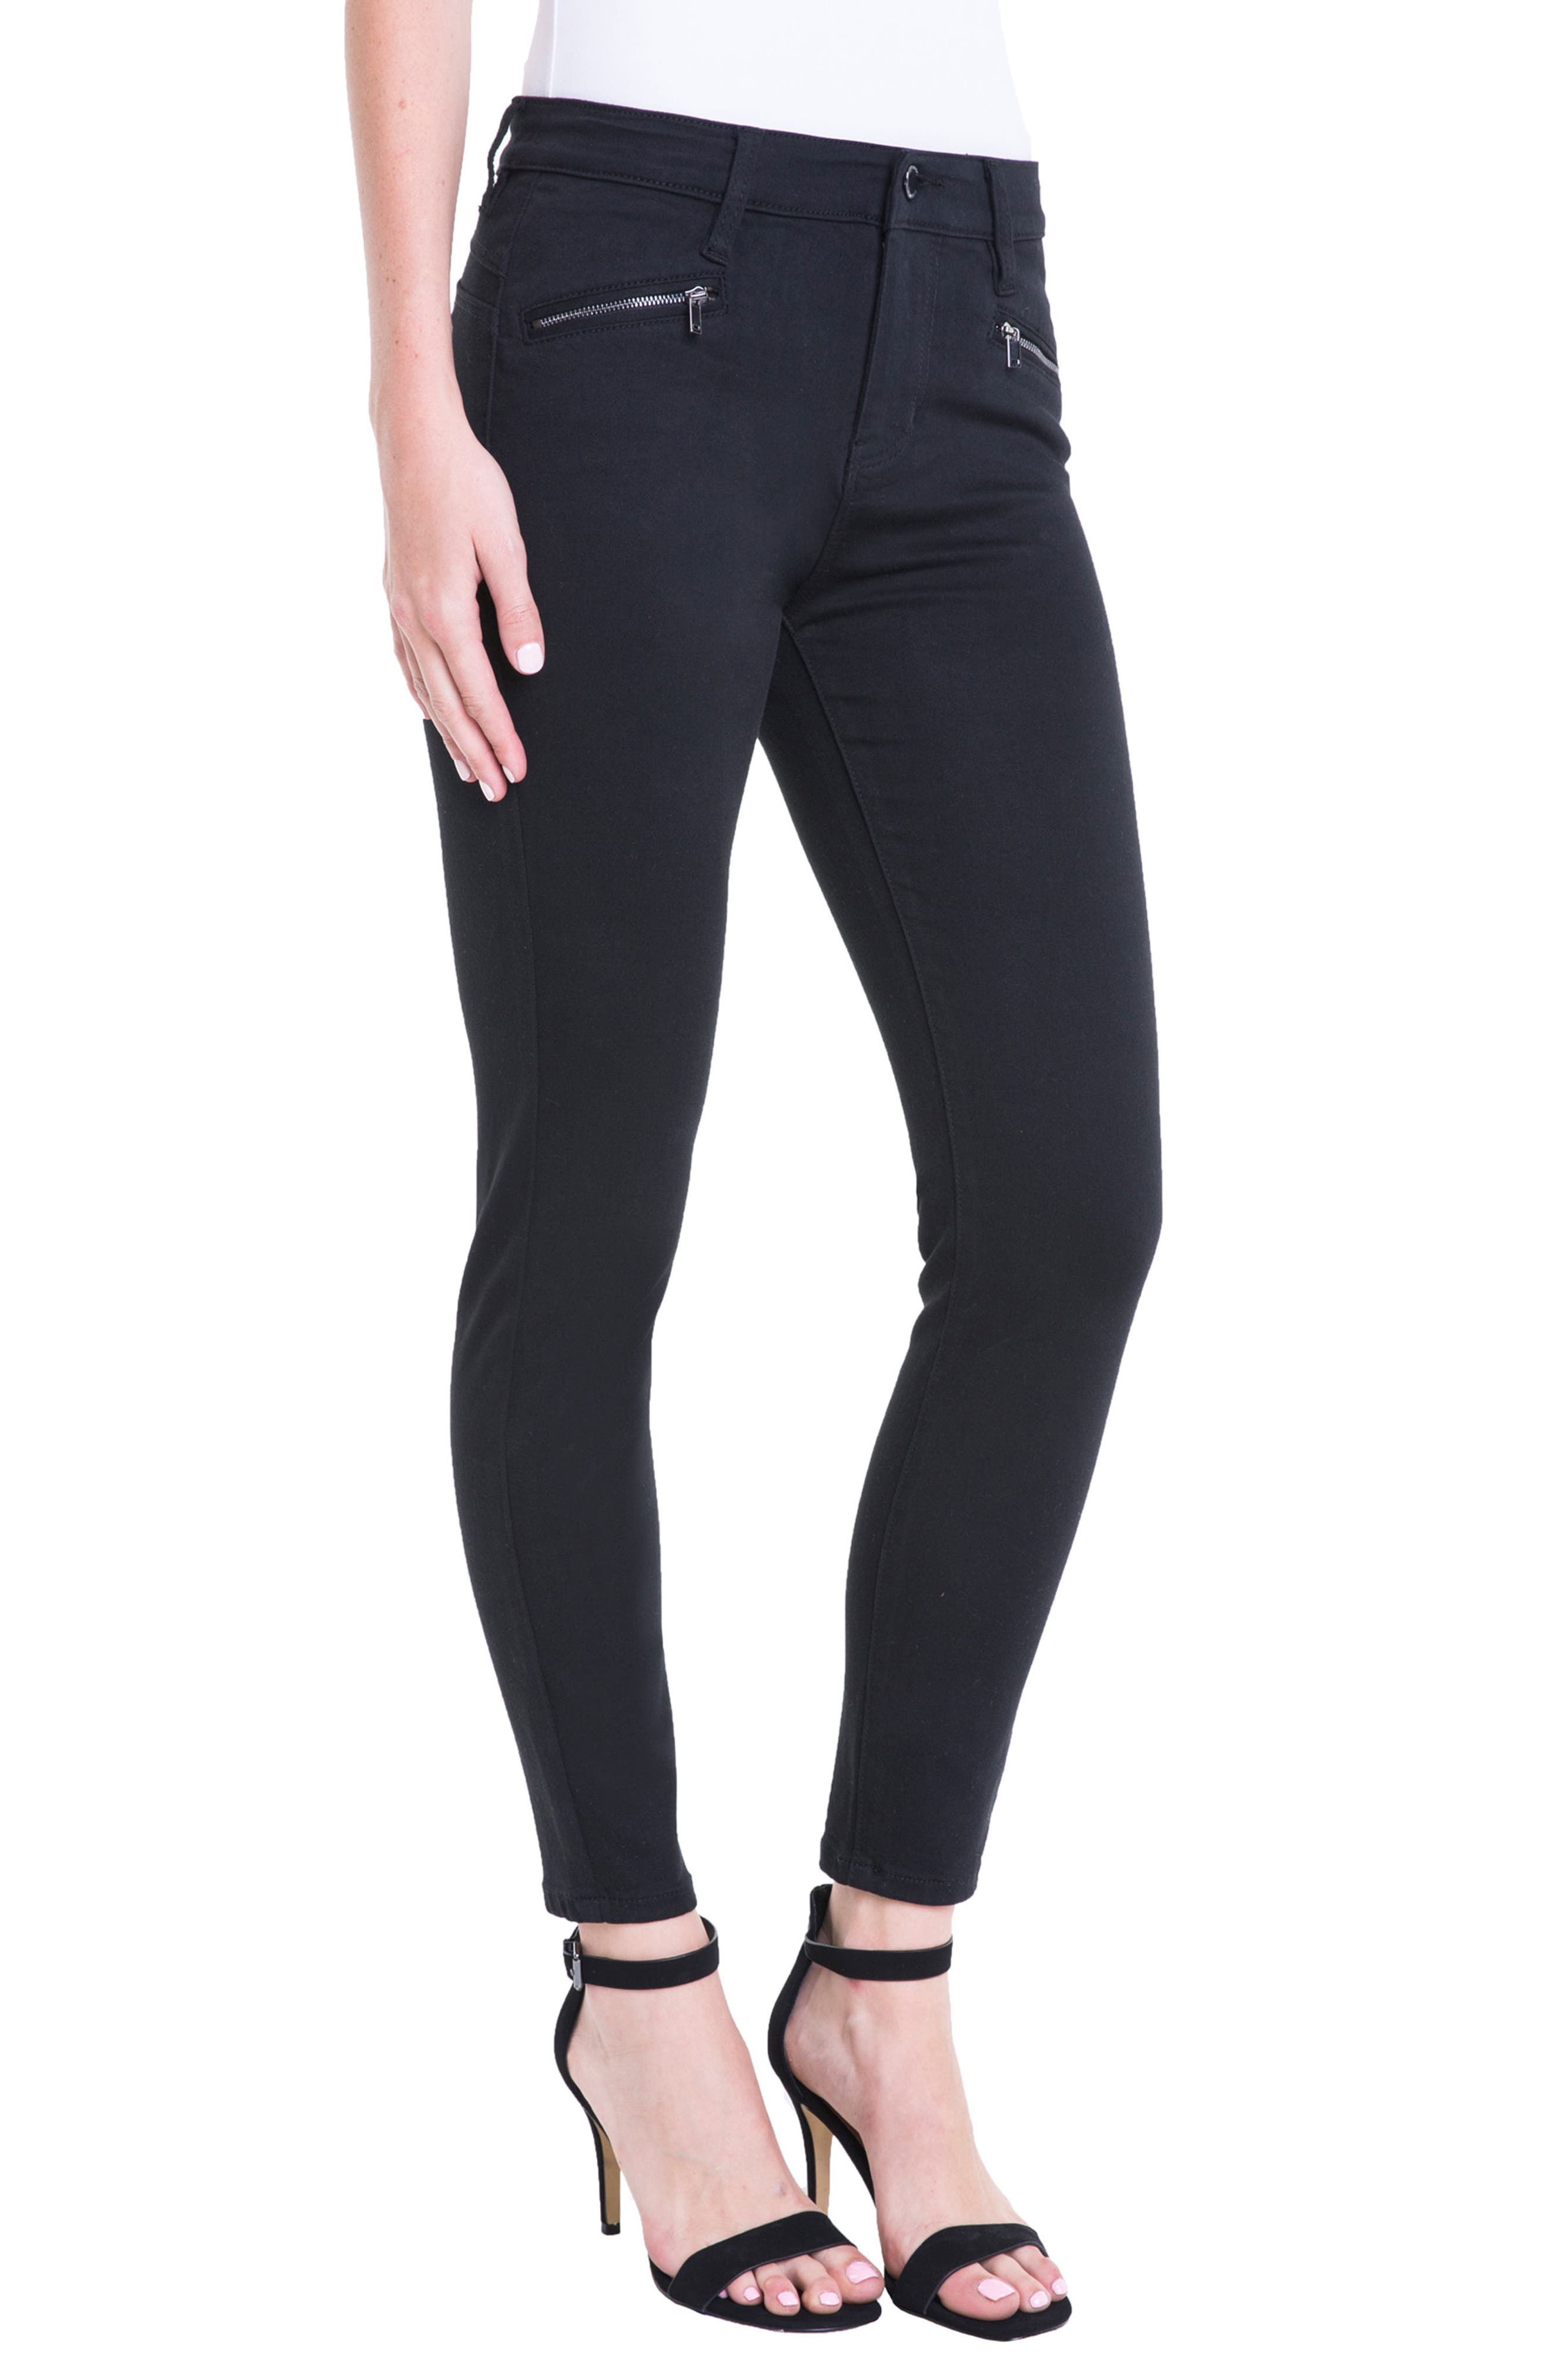 Remy Zipper Stretch Skinny Jeans,                             Alternate thumbnail 3, color,